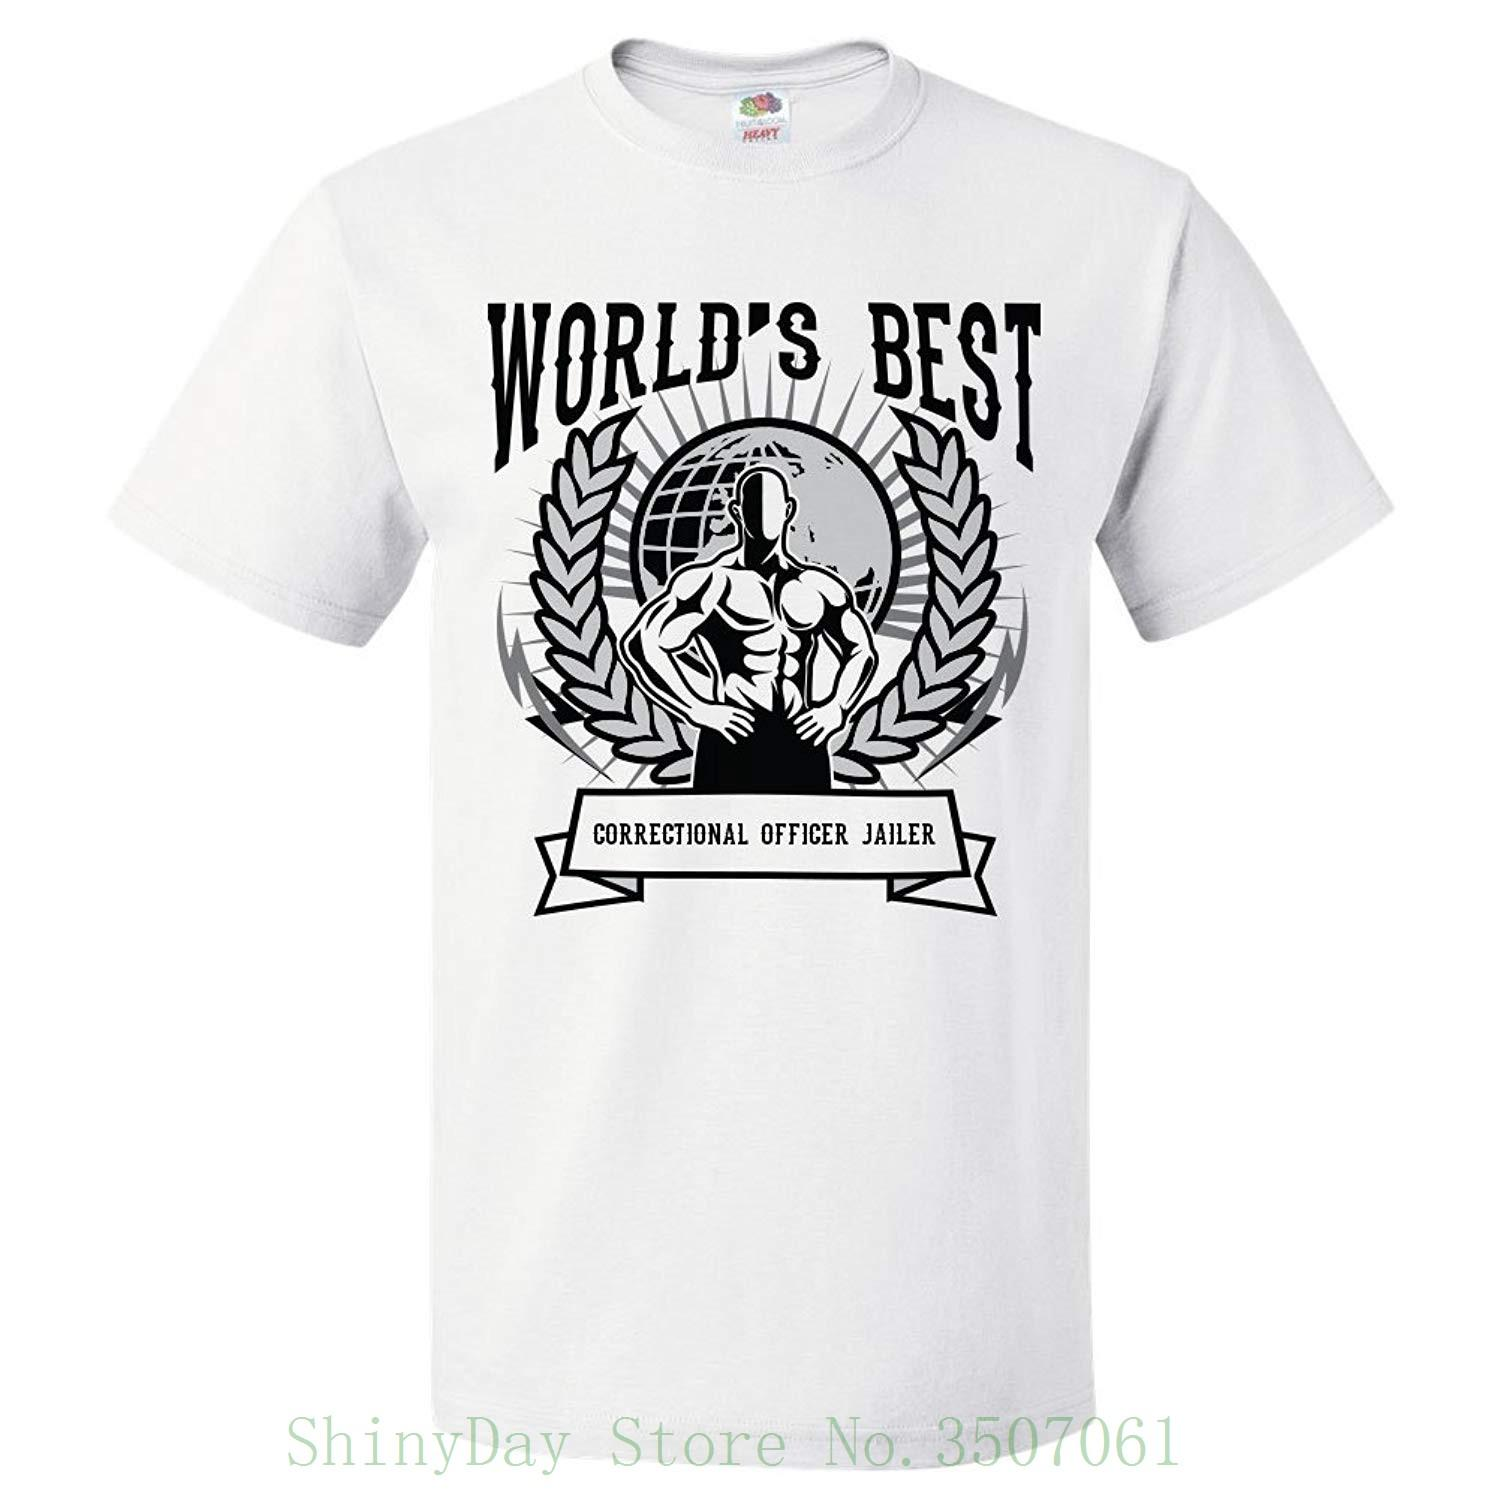 935a10d5e World'S Best Correctional Officer Jailer T Shirt Gift For Correctional  Officer Jailer Shirt Colour Funny Printed Tee Shirt Online Shopping 24 Hour  Tee ...